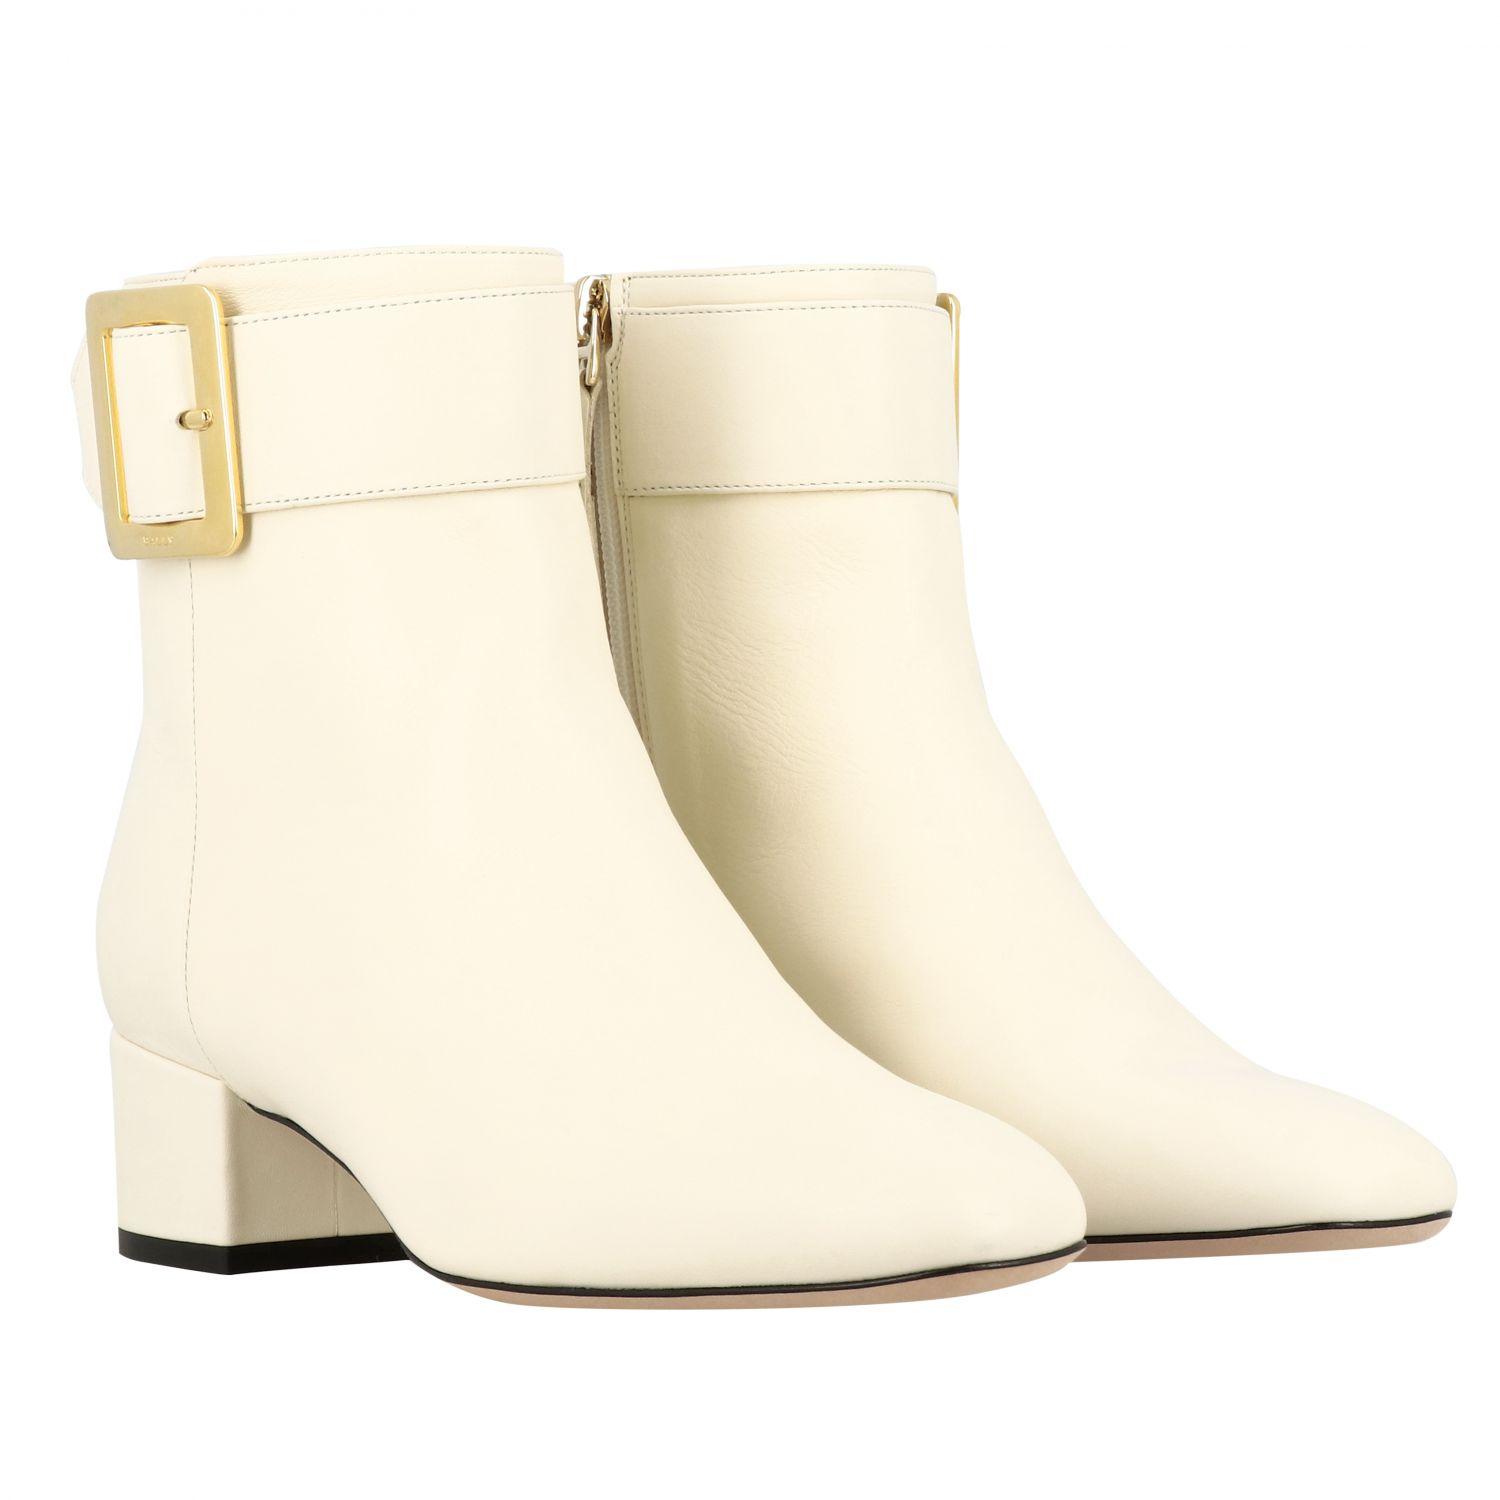 Shoes women Bally yellow cream 2